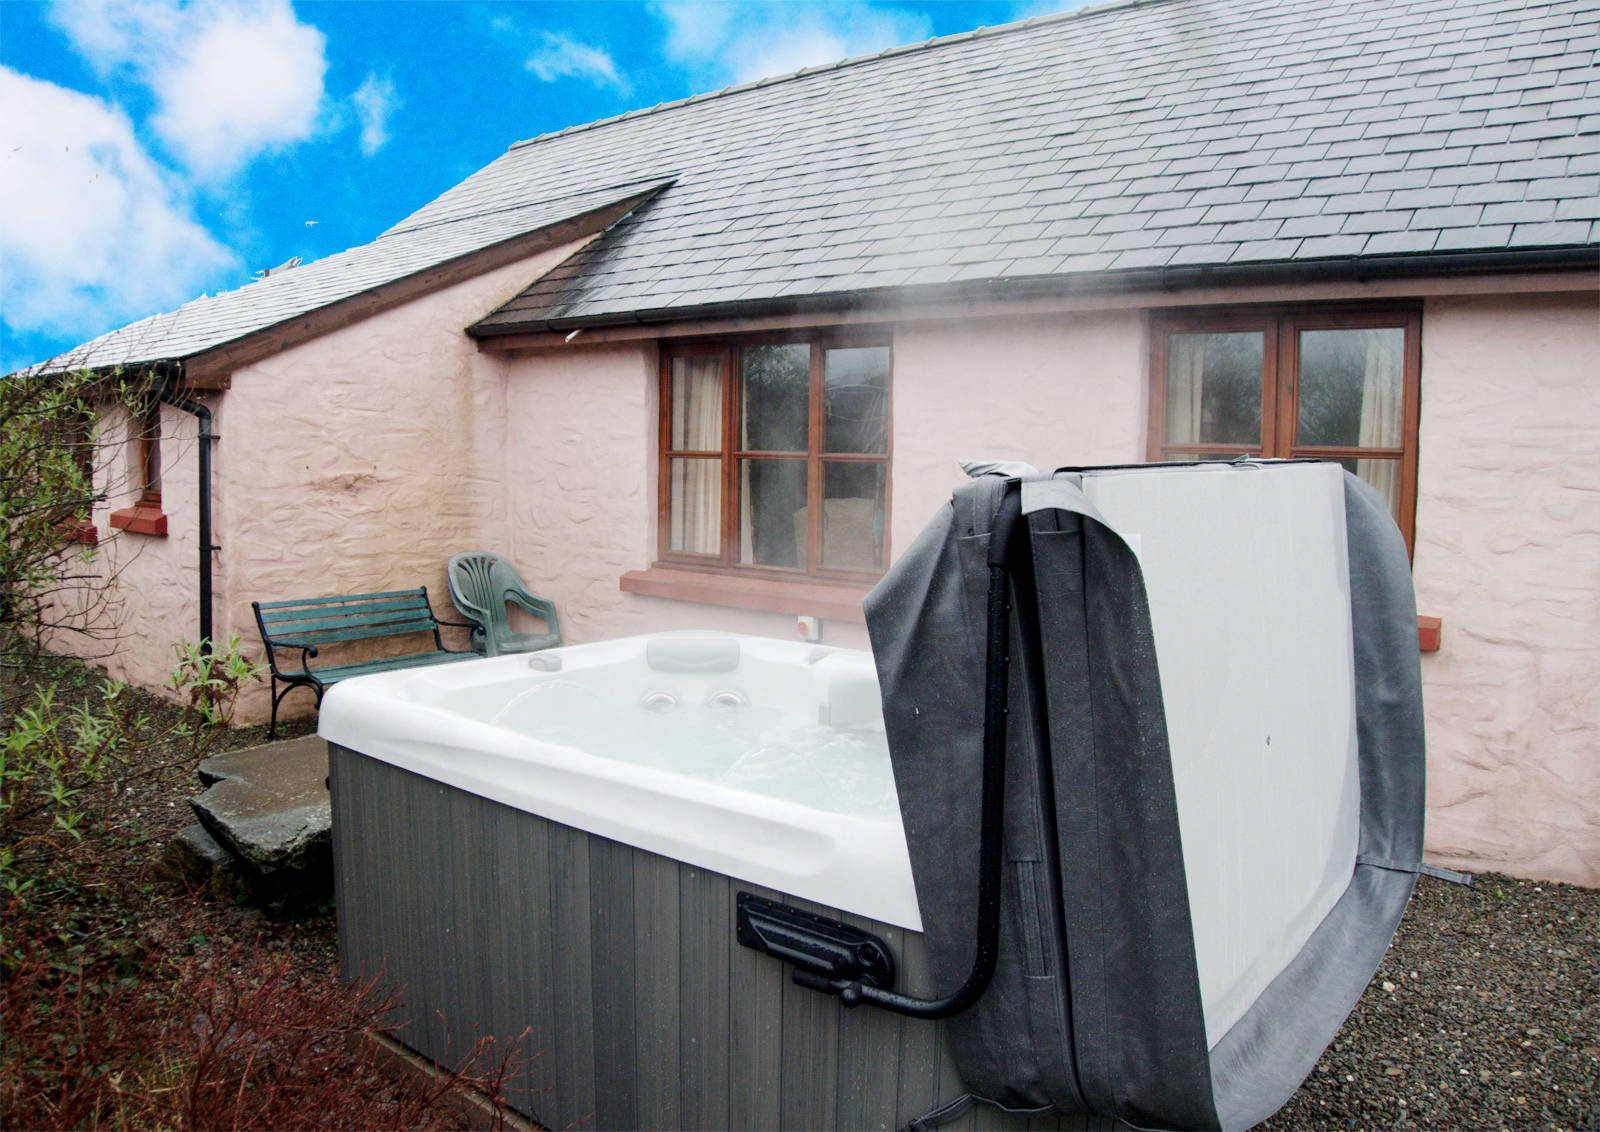 Disabled Holidays - Ty Coed - Canllefaes Ganol Cottages, Cardigan, Ceredigion, Wales